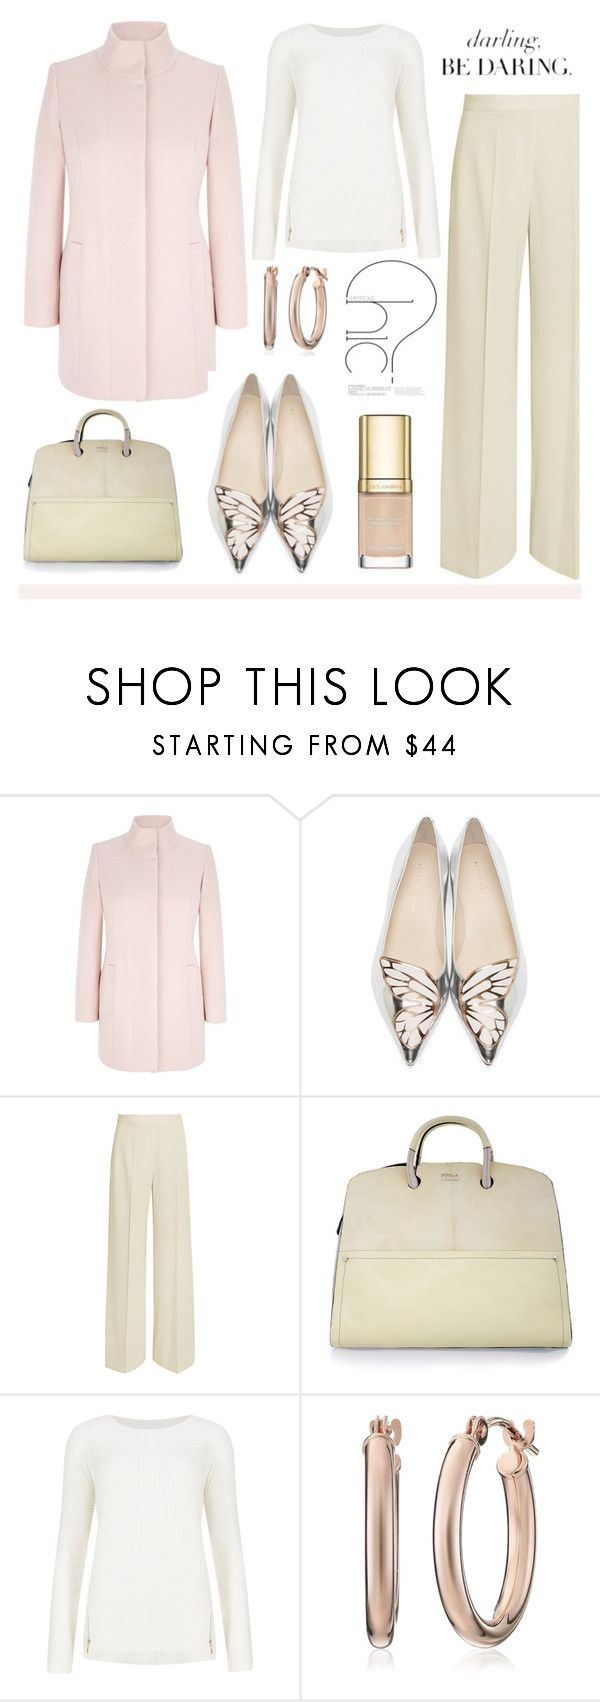 """Winter Pastels"" by soleuza ❤ liked on Polyvore featuring Viyella, Sophia Webster, STELLA McCARTNEY, Furla, M&S Collection and Dolce&Gabbana"